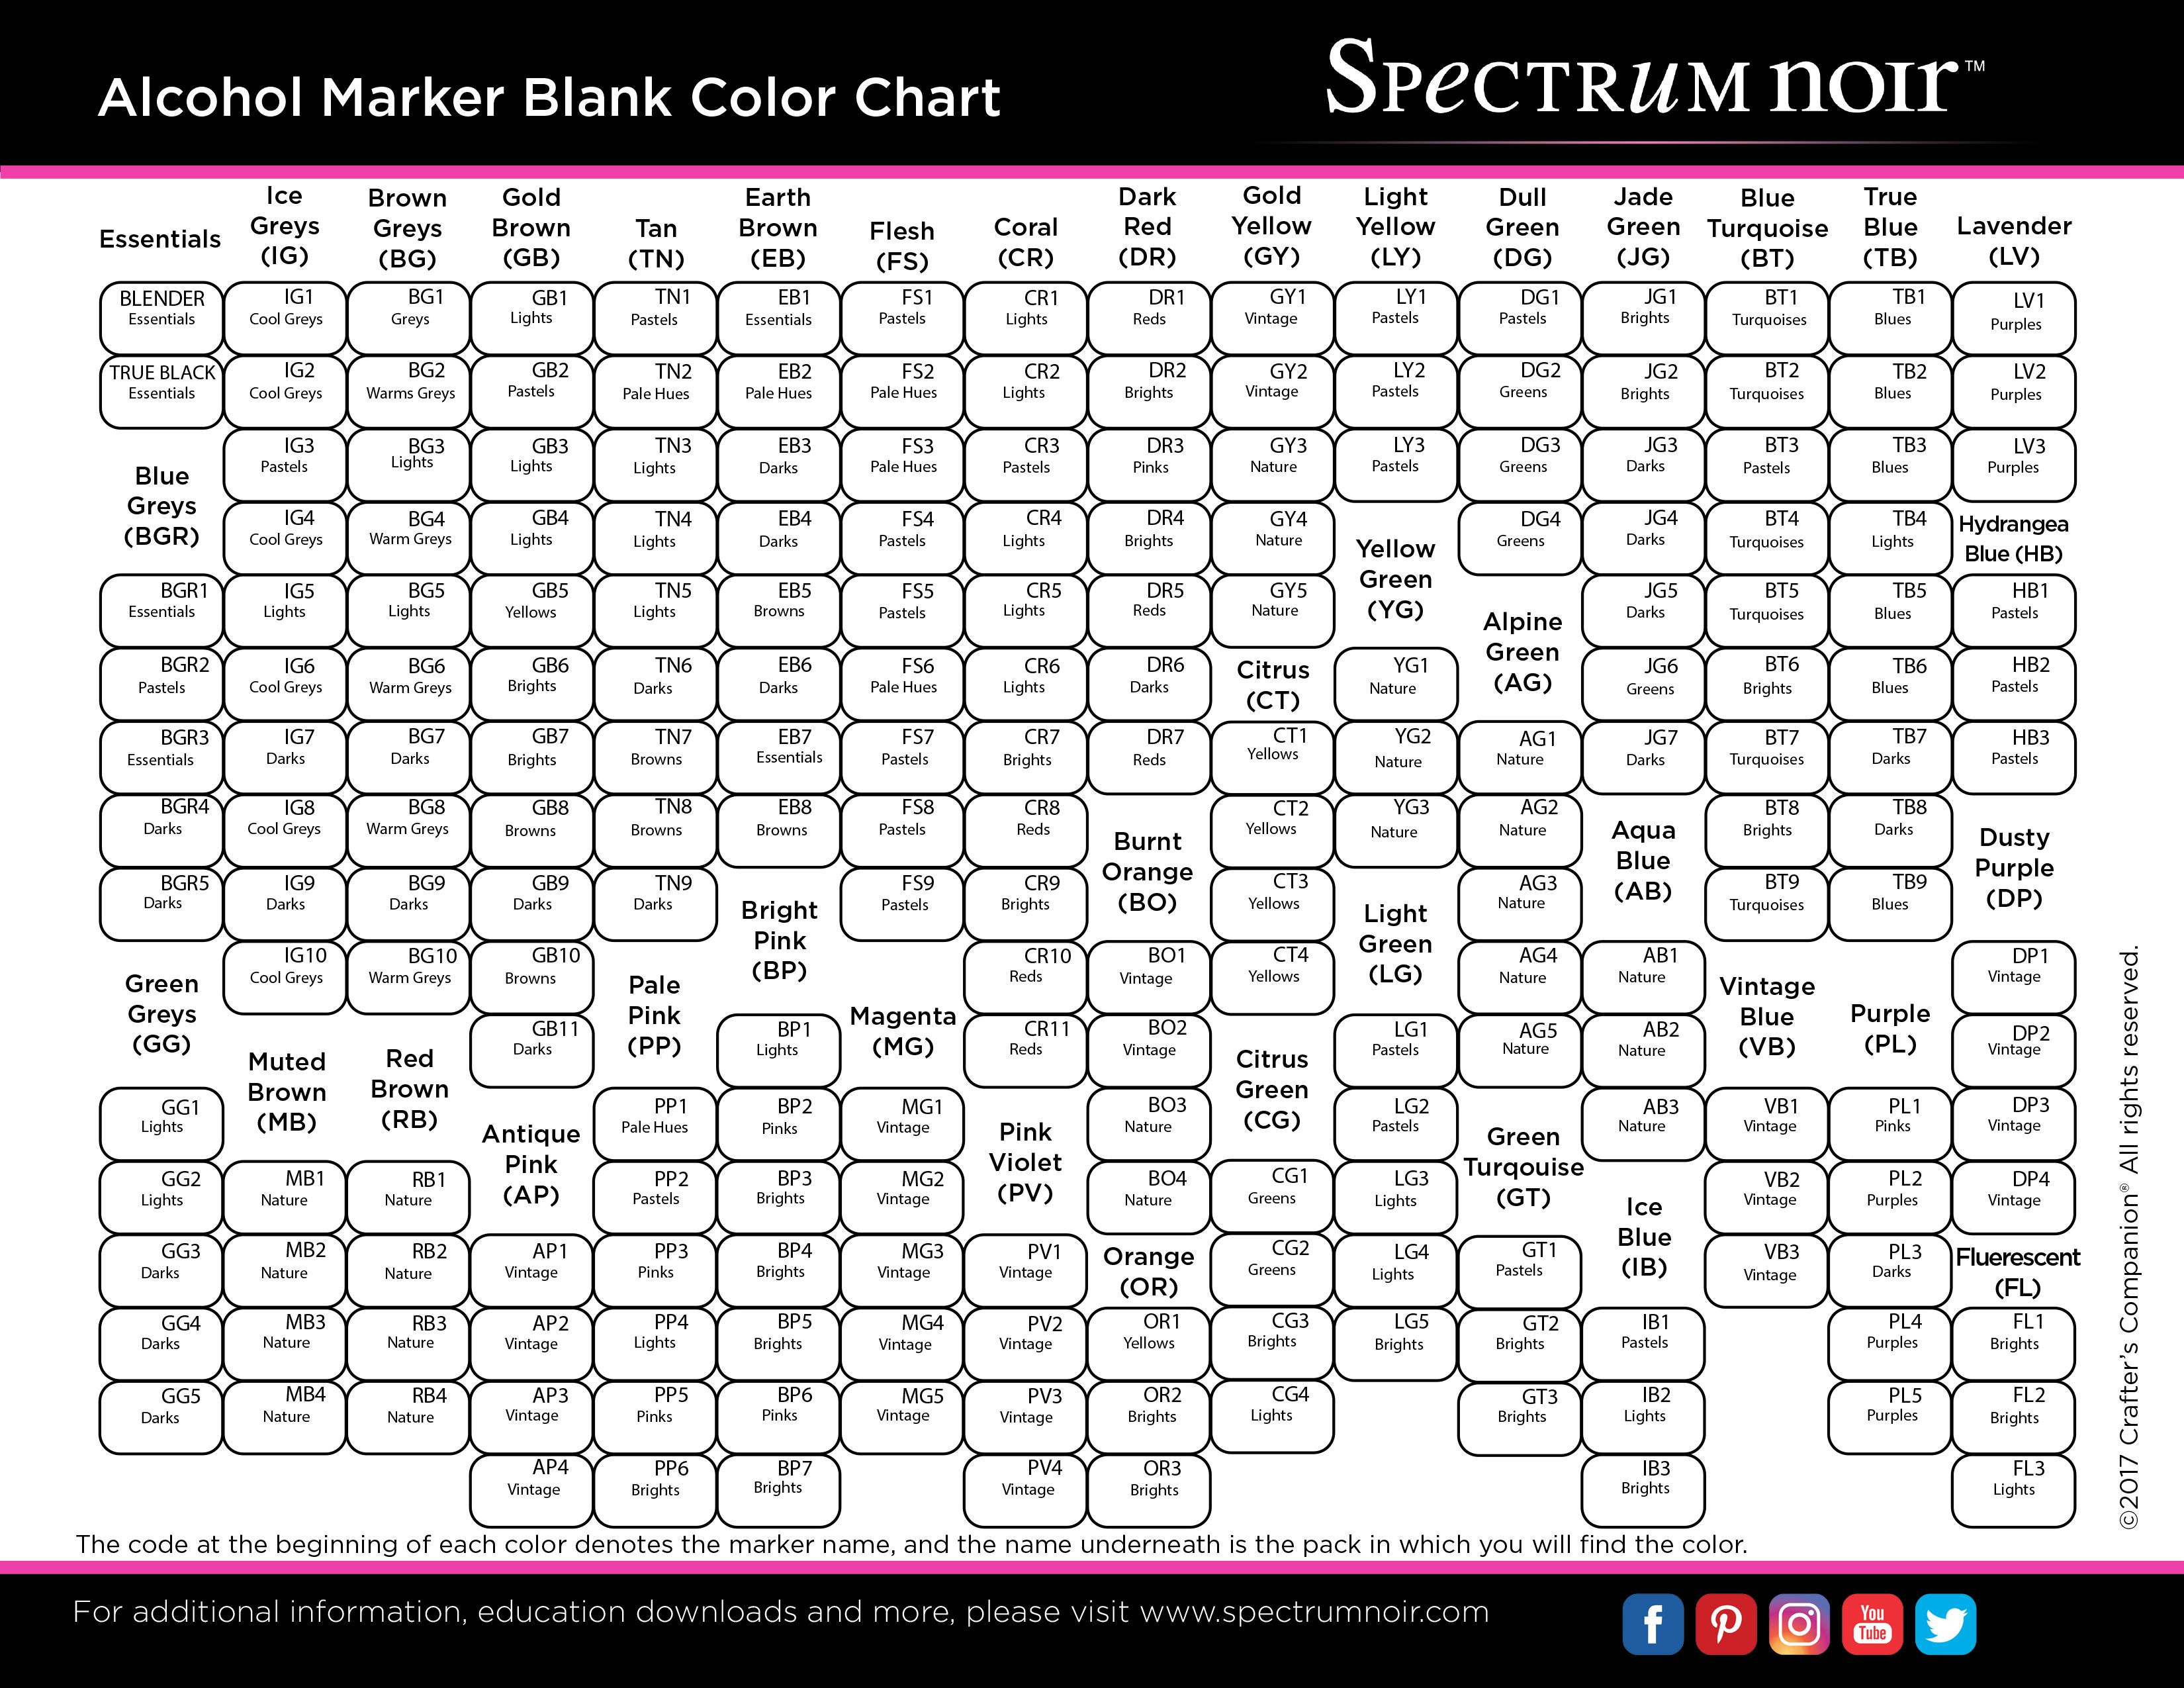 Sn Markers Color Chart Complete Collection 2017 Blank Jpg 3300 2550 Spectrum Noir Markers Coloring Spectrum Noir Markers Spectrum Noir Pencils